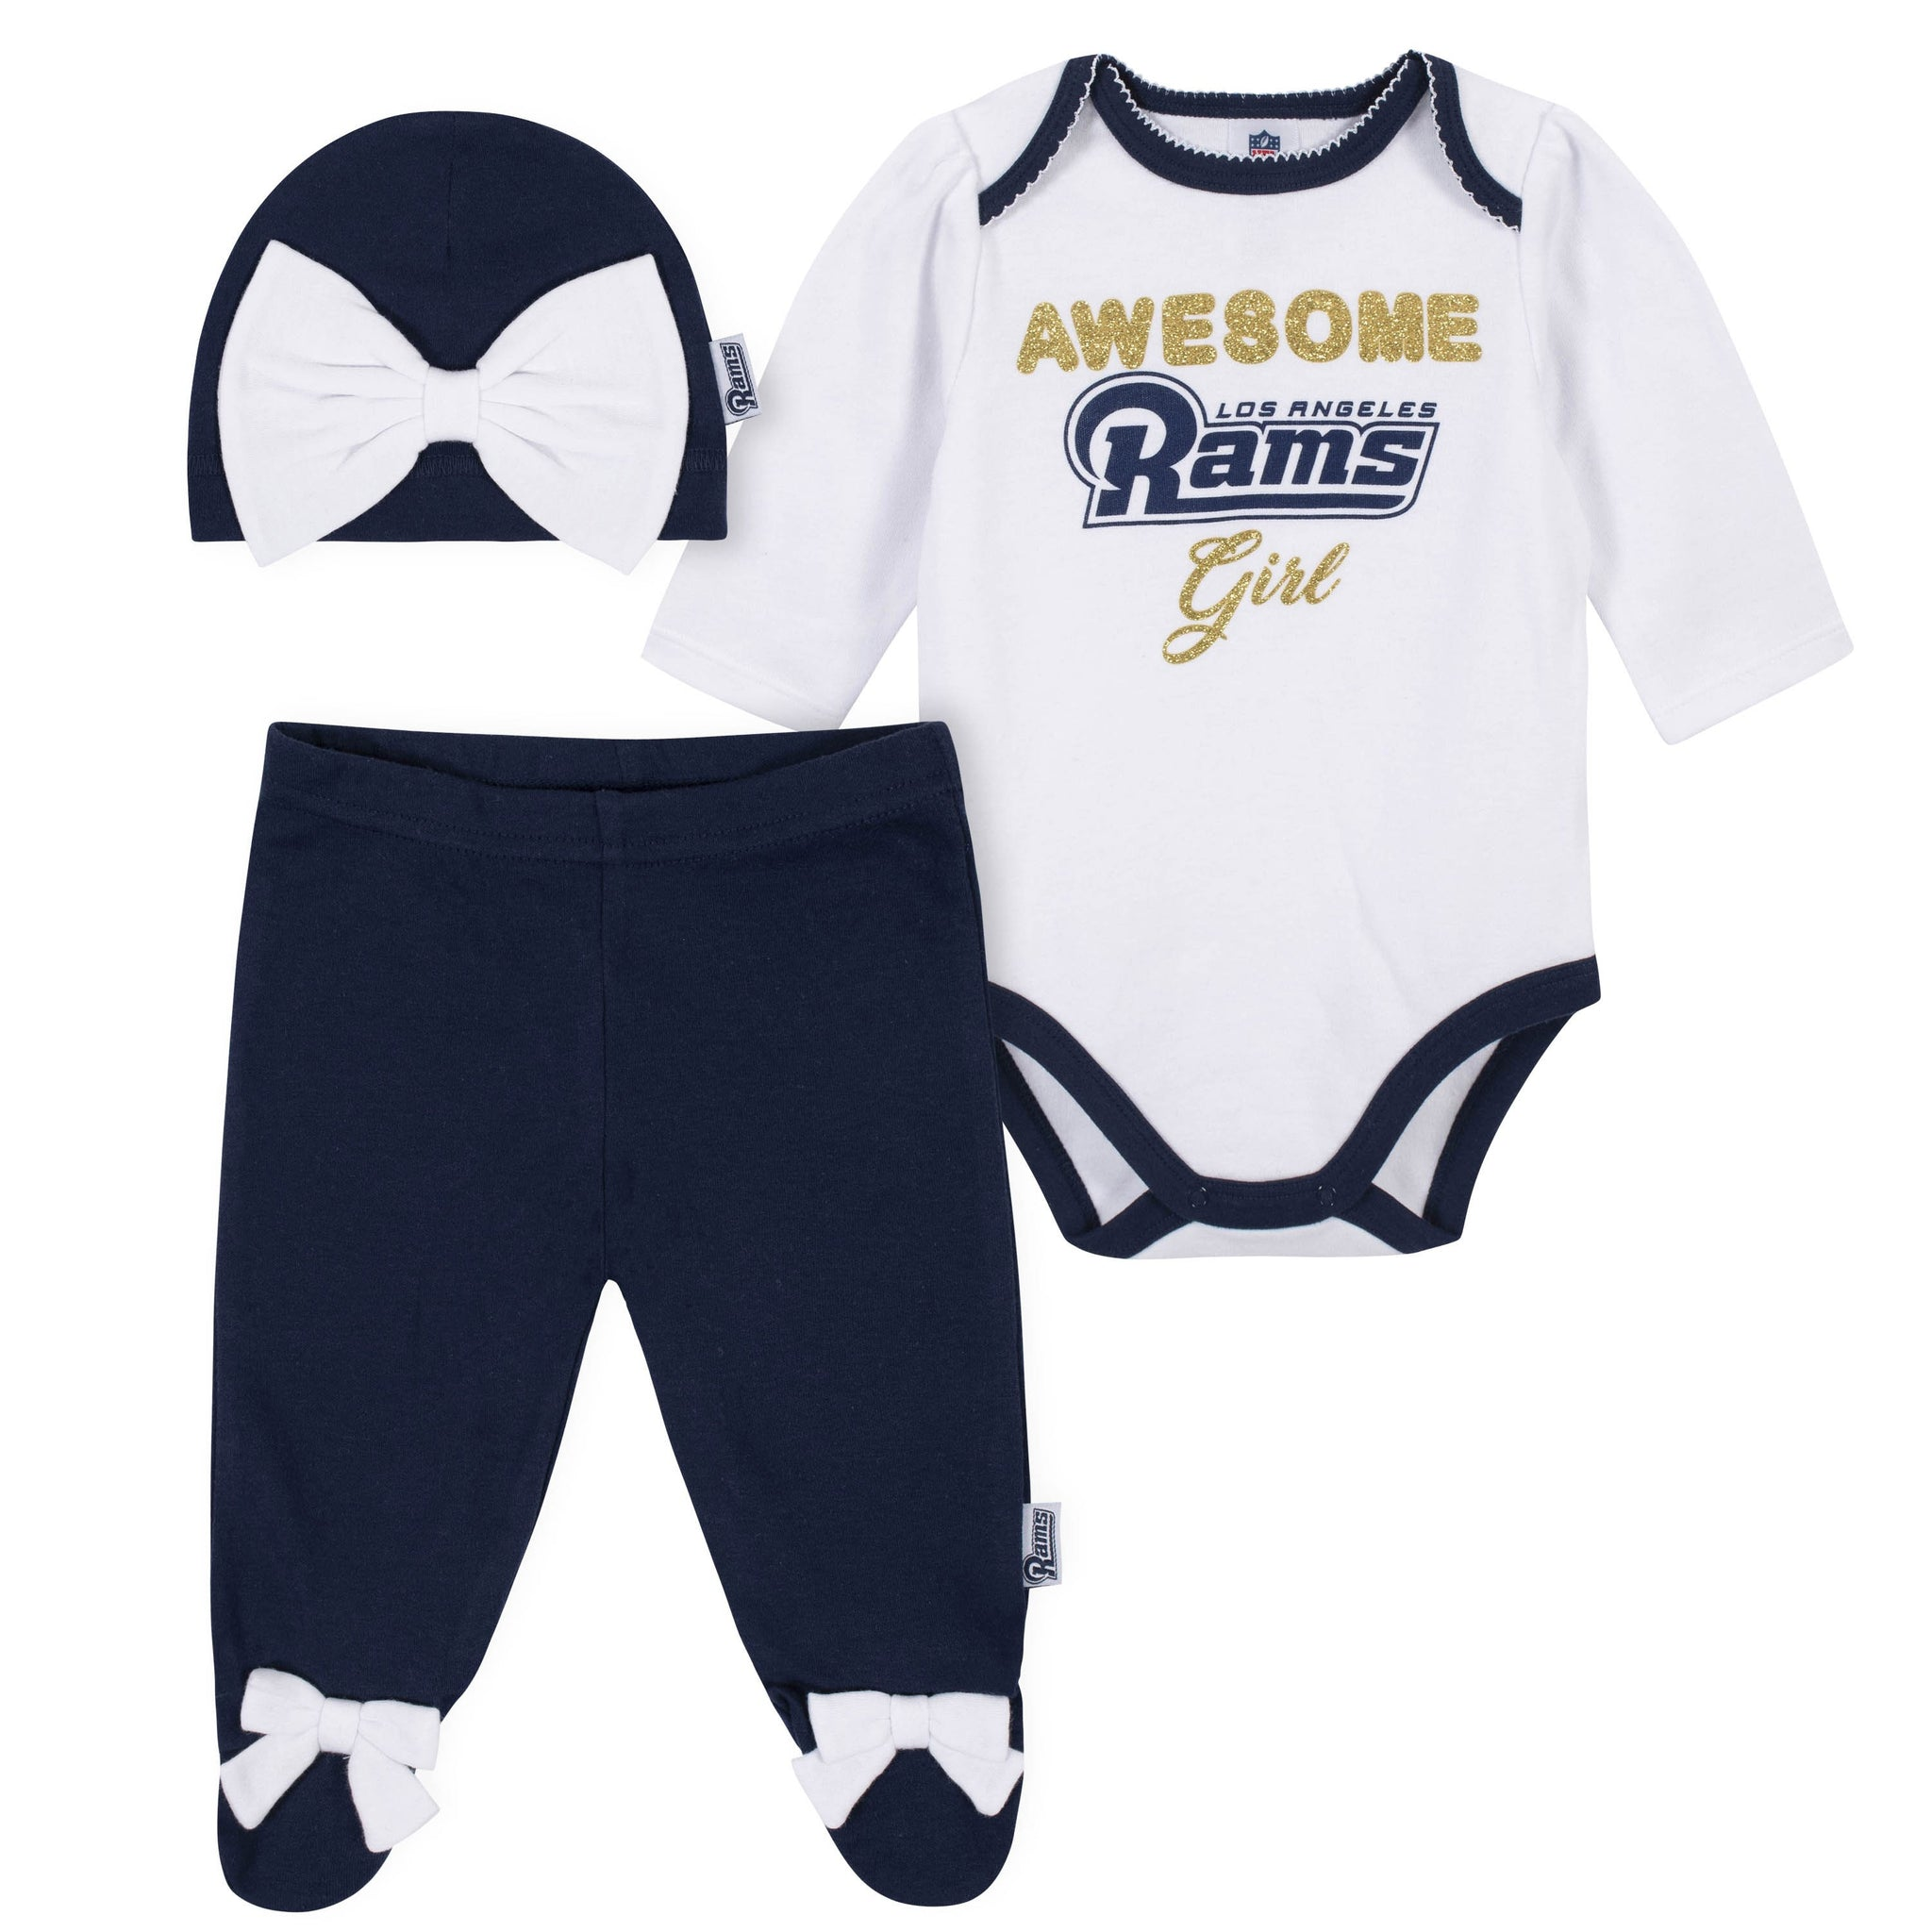 Los Angeles Rams Girl Outfit, 3pc  Bodysuit, Pant, and Cap Set - Rams